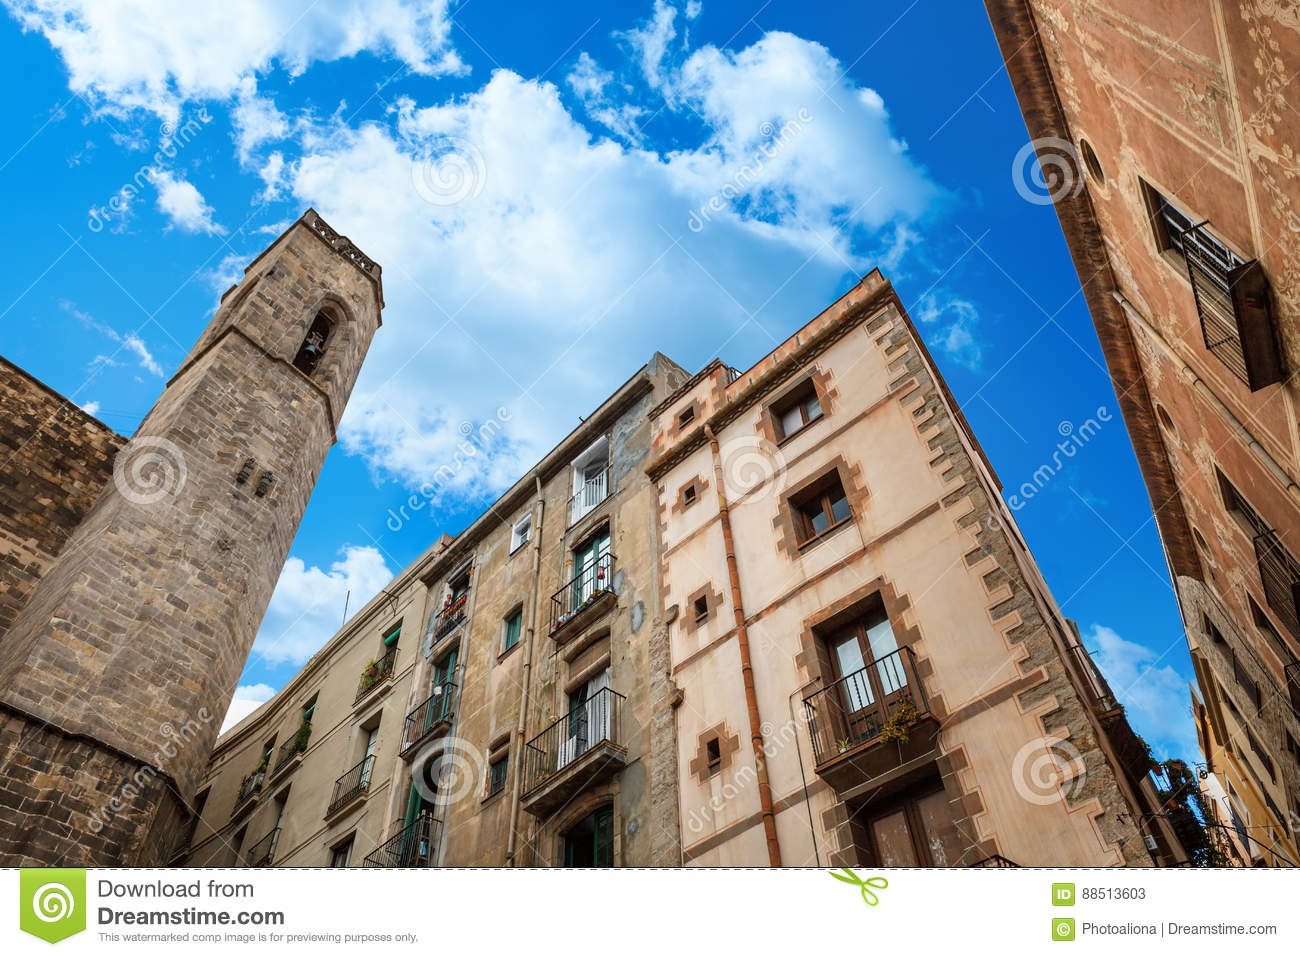 King Palace in Barcelona: medieval Palau Reial Royal Palace in catalan at Placa del Rei King`s Square